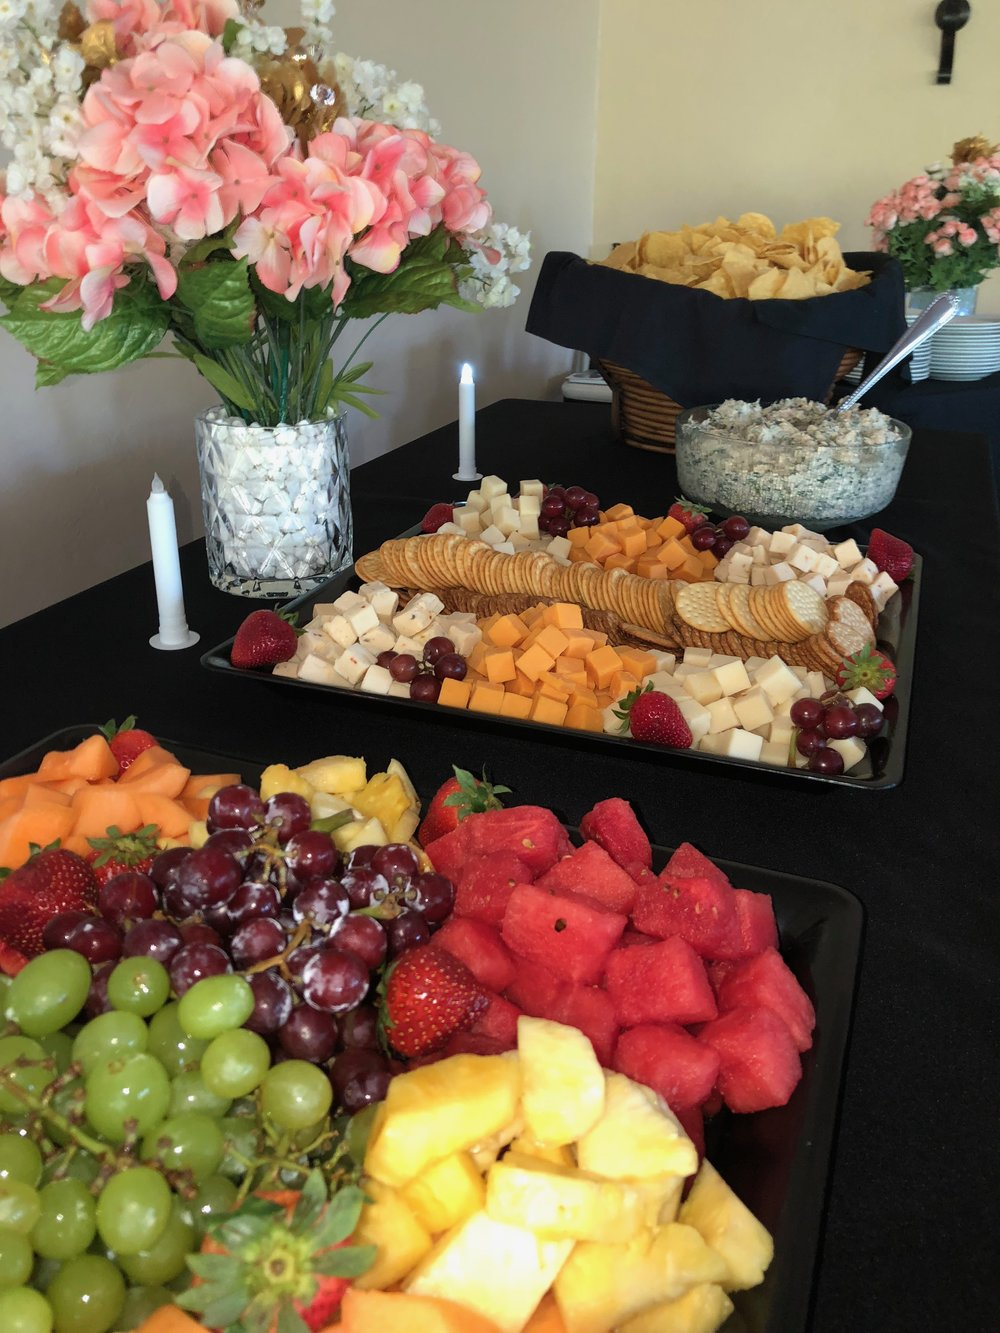 Catering wedding fruit tray.JPG